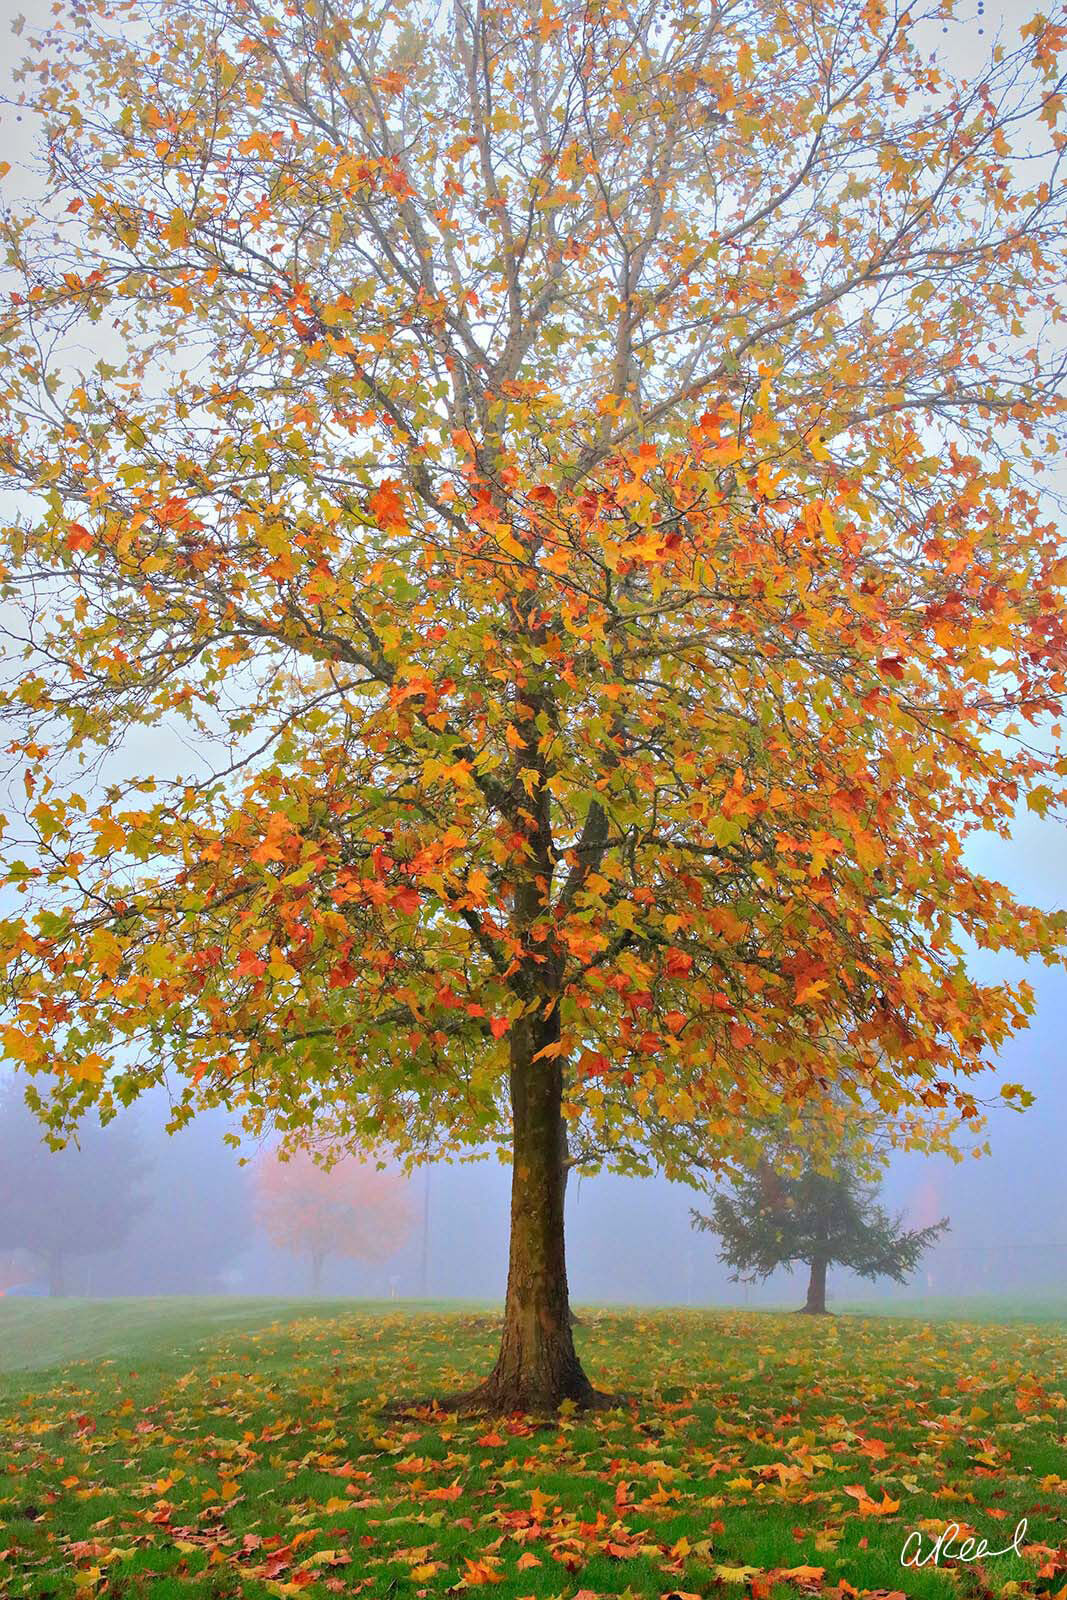 A single tree with yellow leaves in a park on a foggy morning.